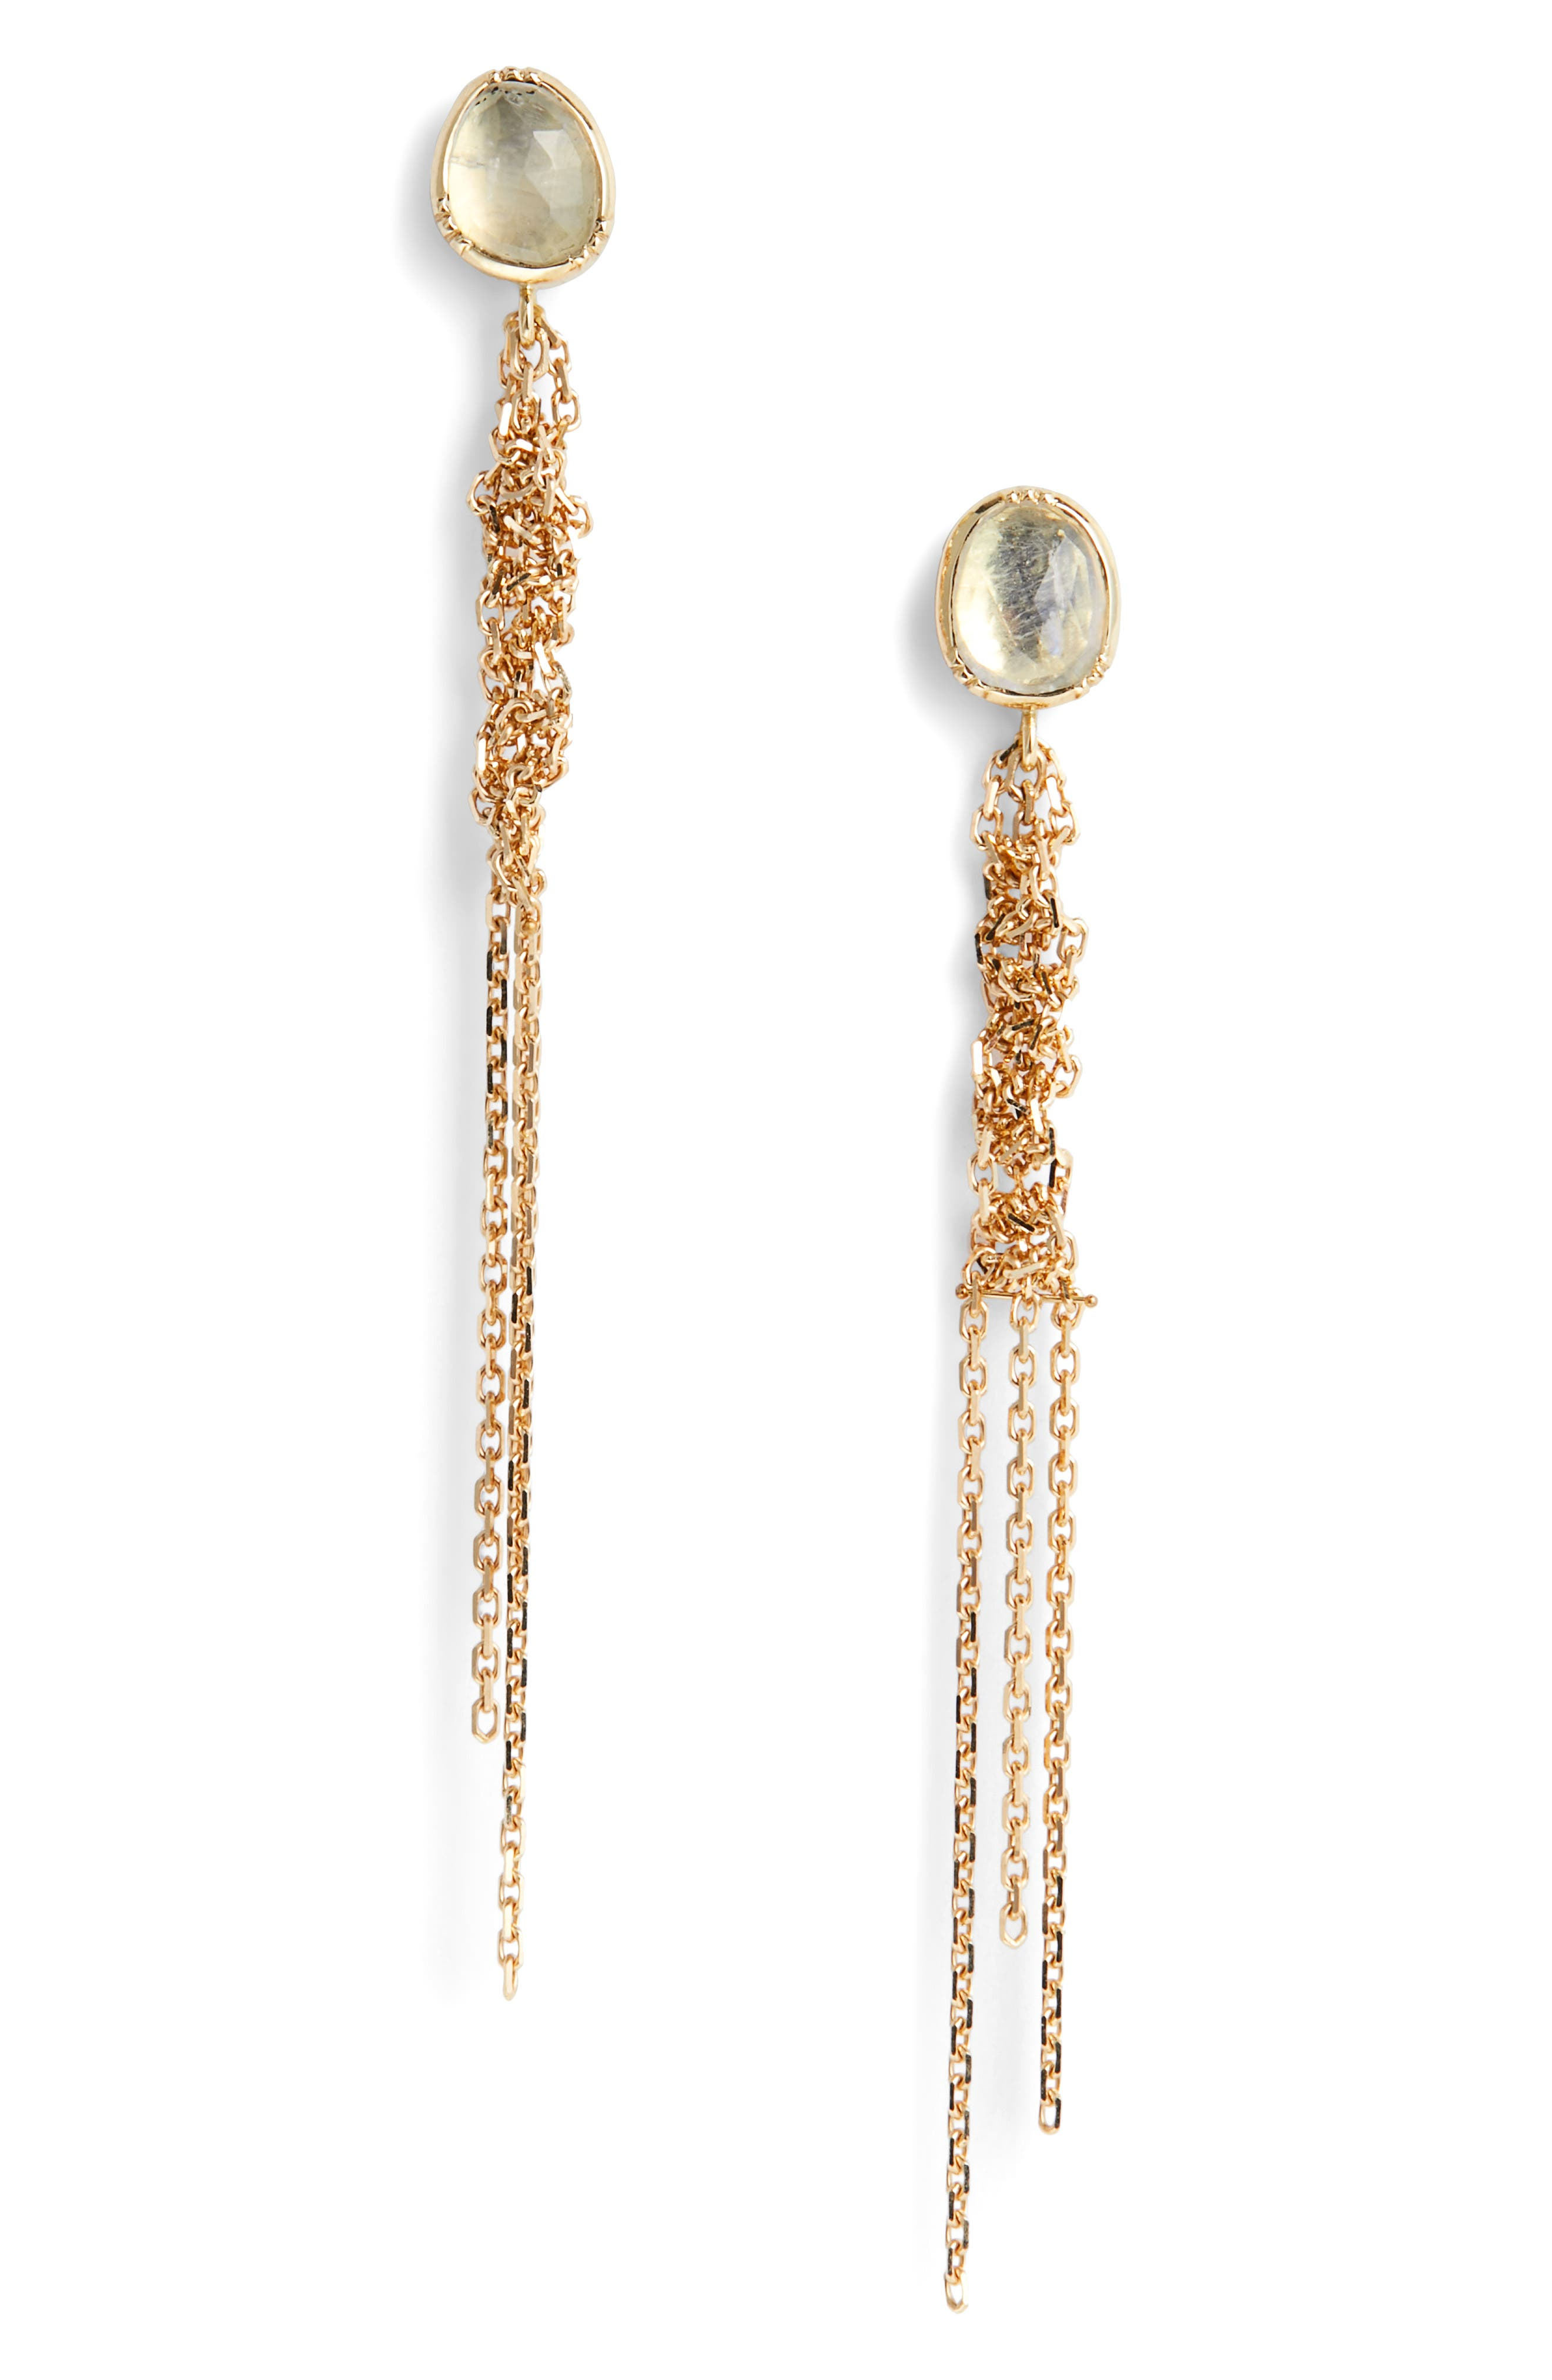 Waterfall Moonstone Earrings,                             Main thumbnail 1, color,                             GOLD